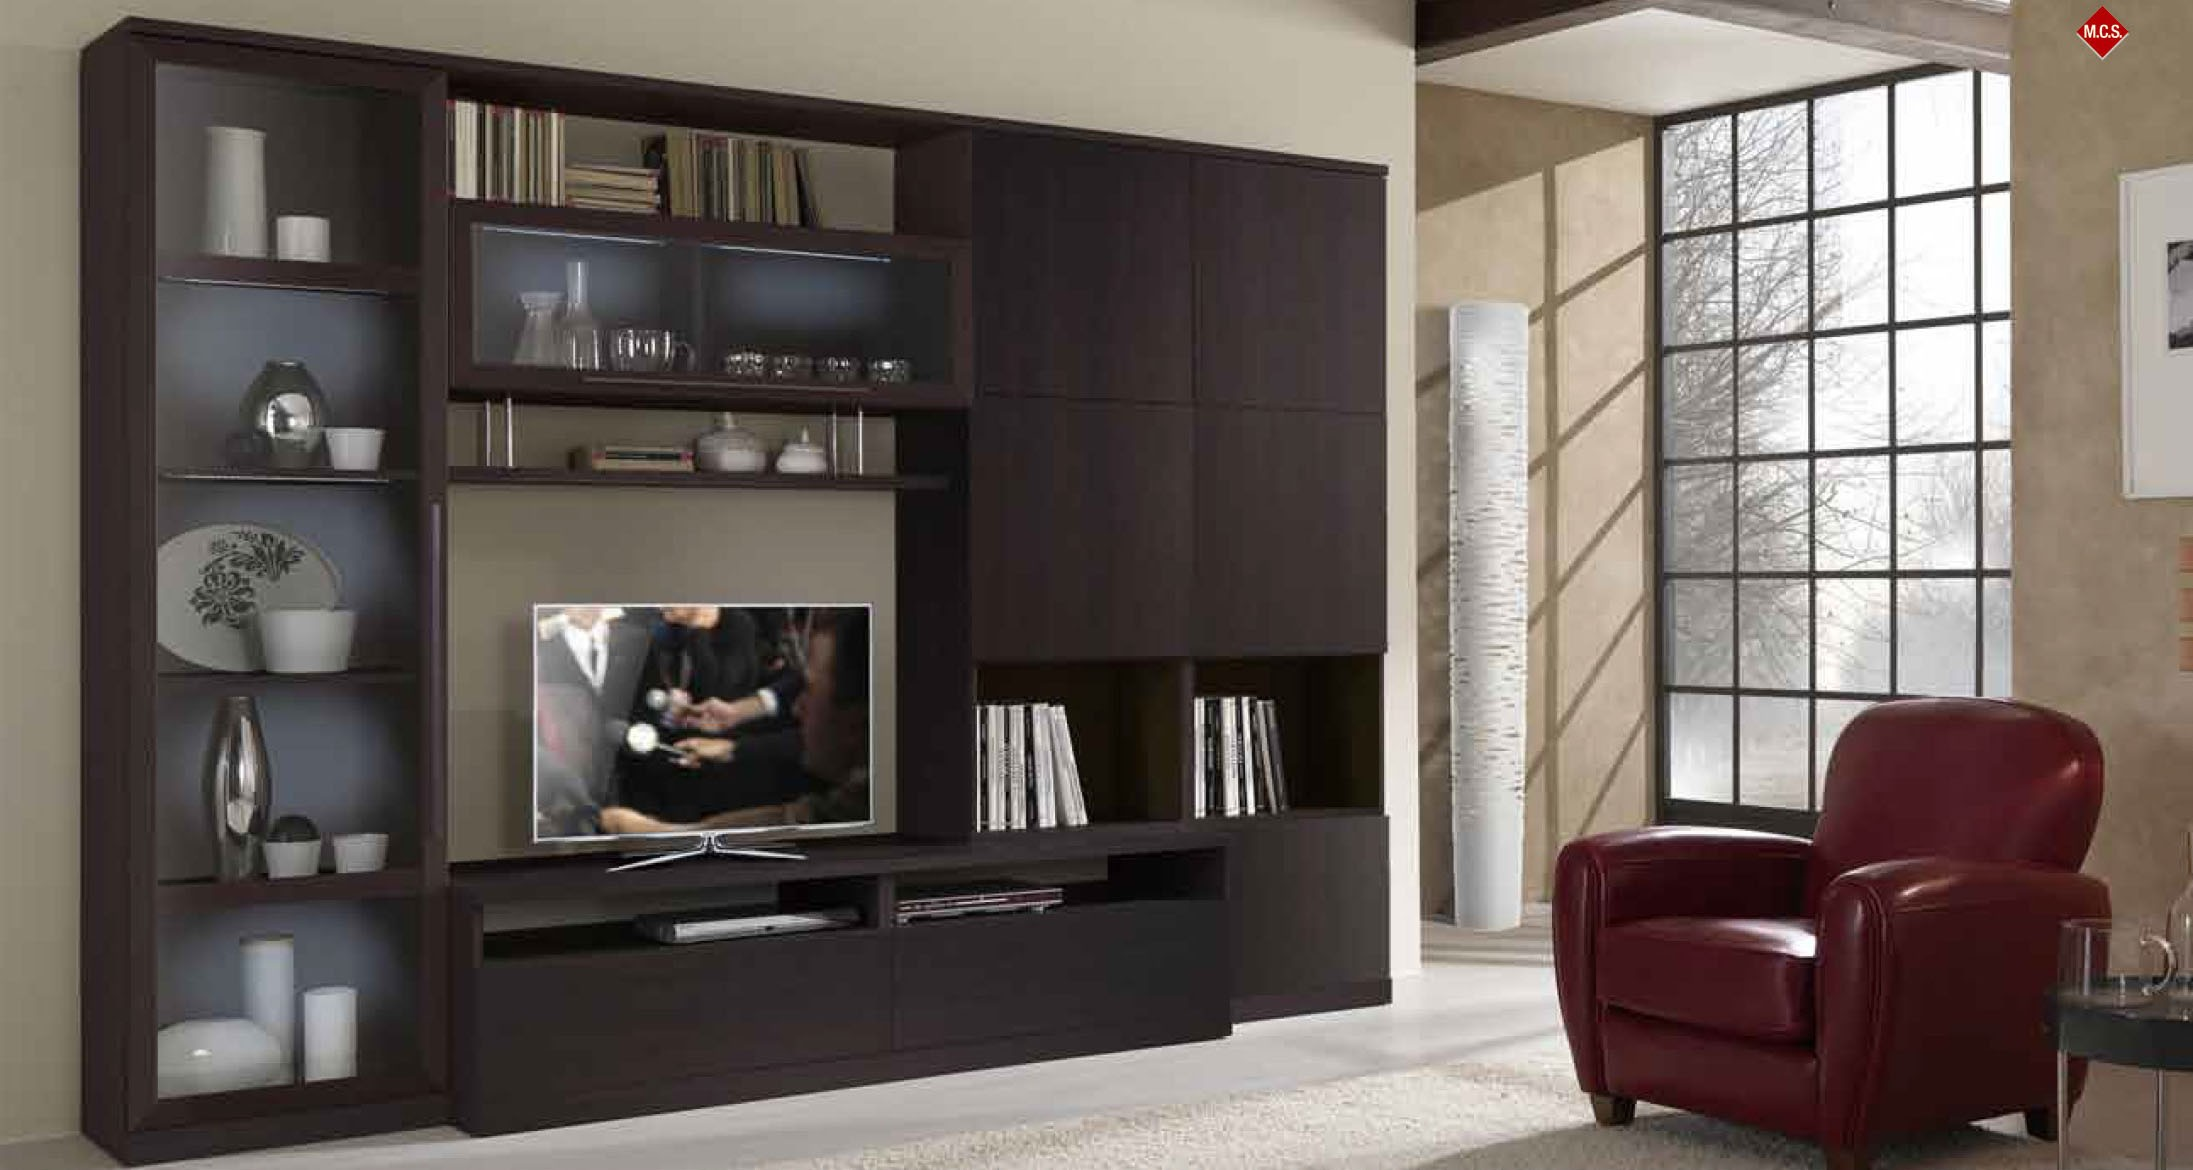 Living Room Tv Wall Unit Designs For Led Design Ideas Hall ...